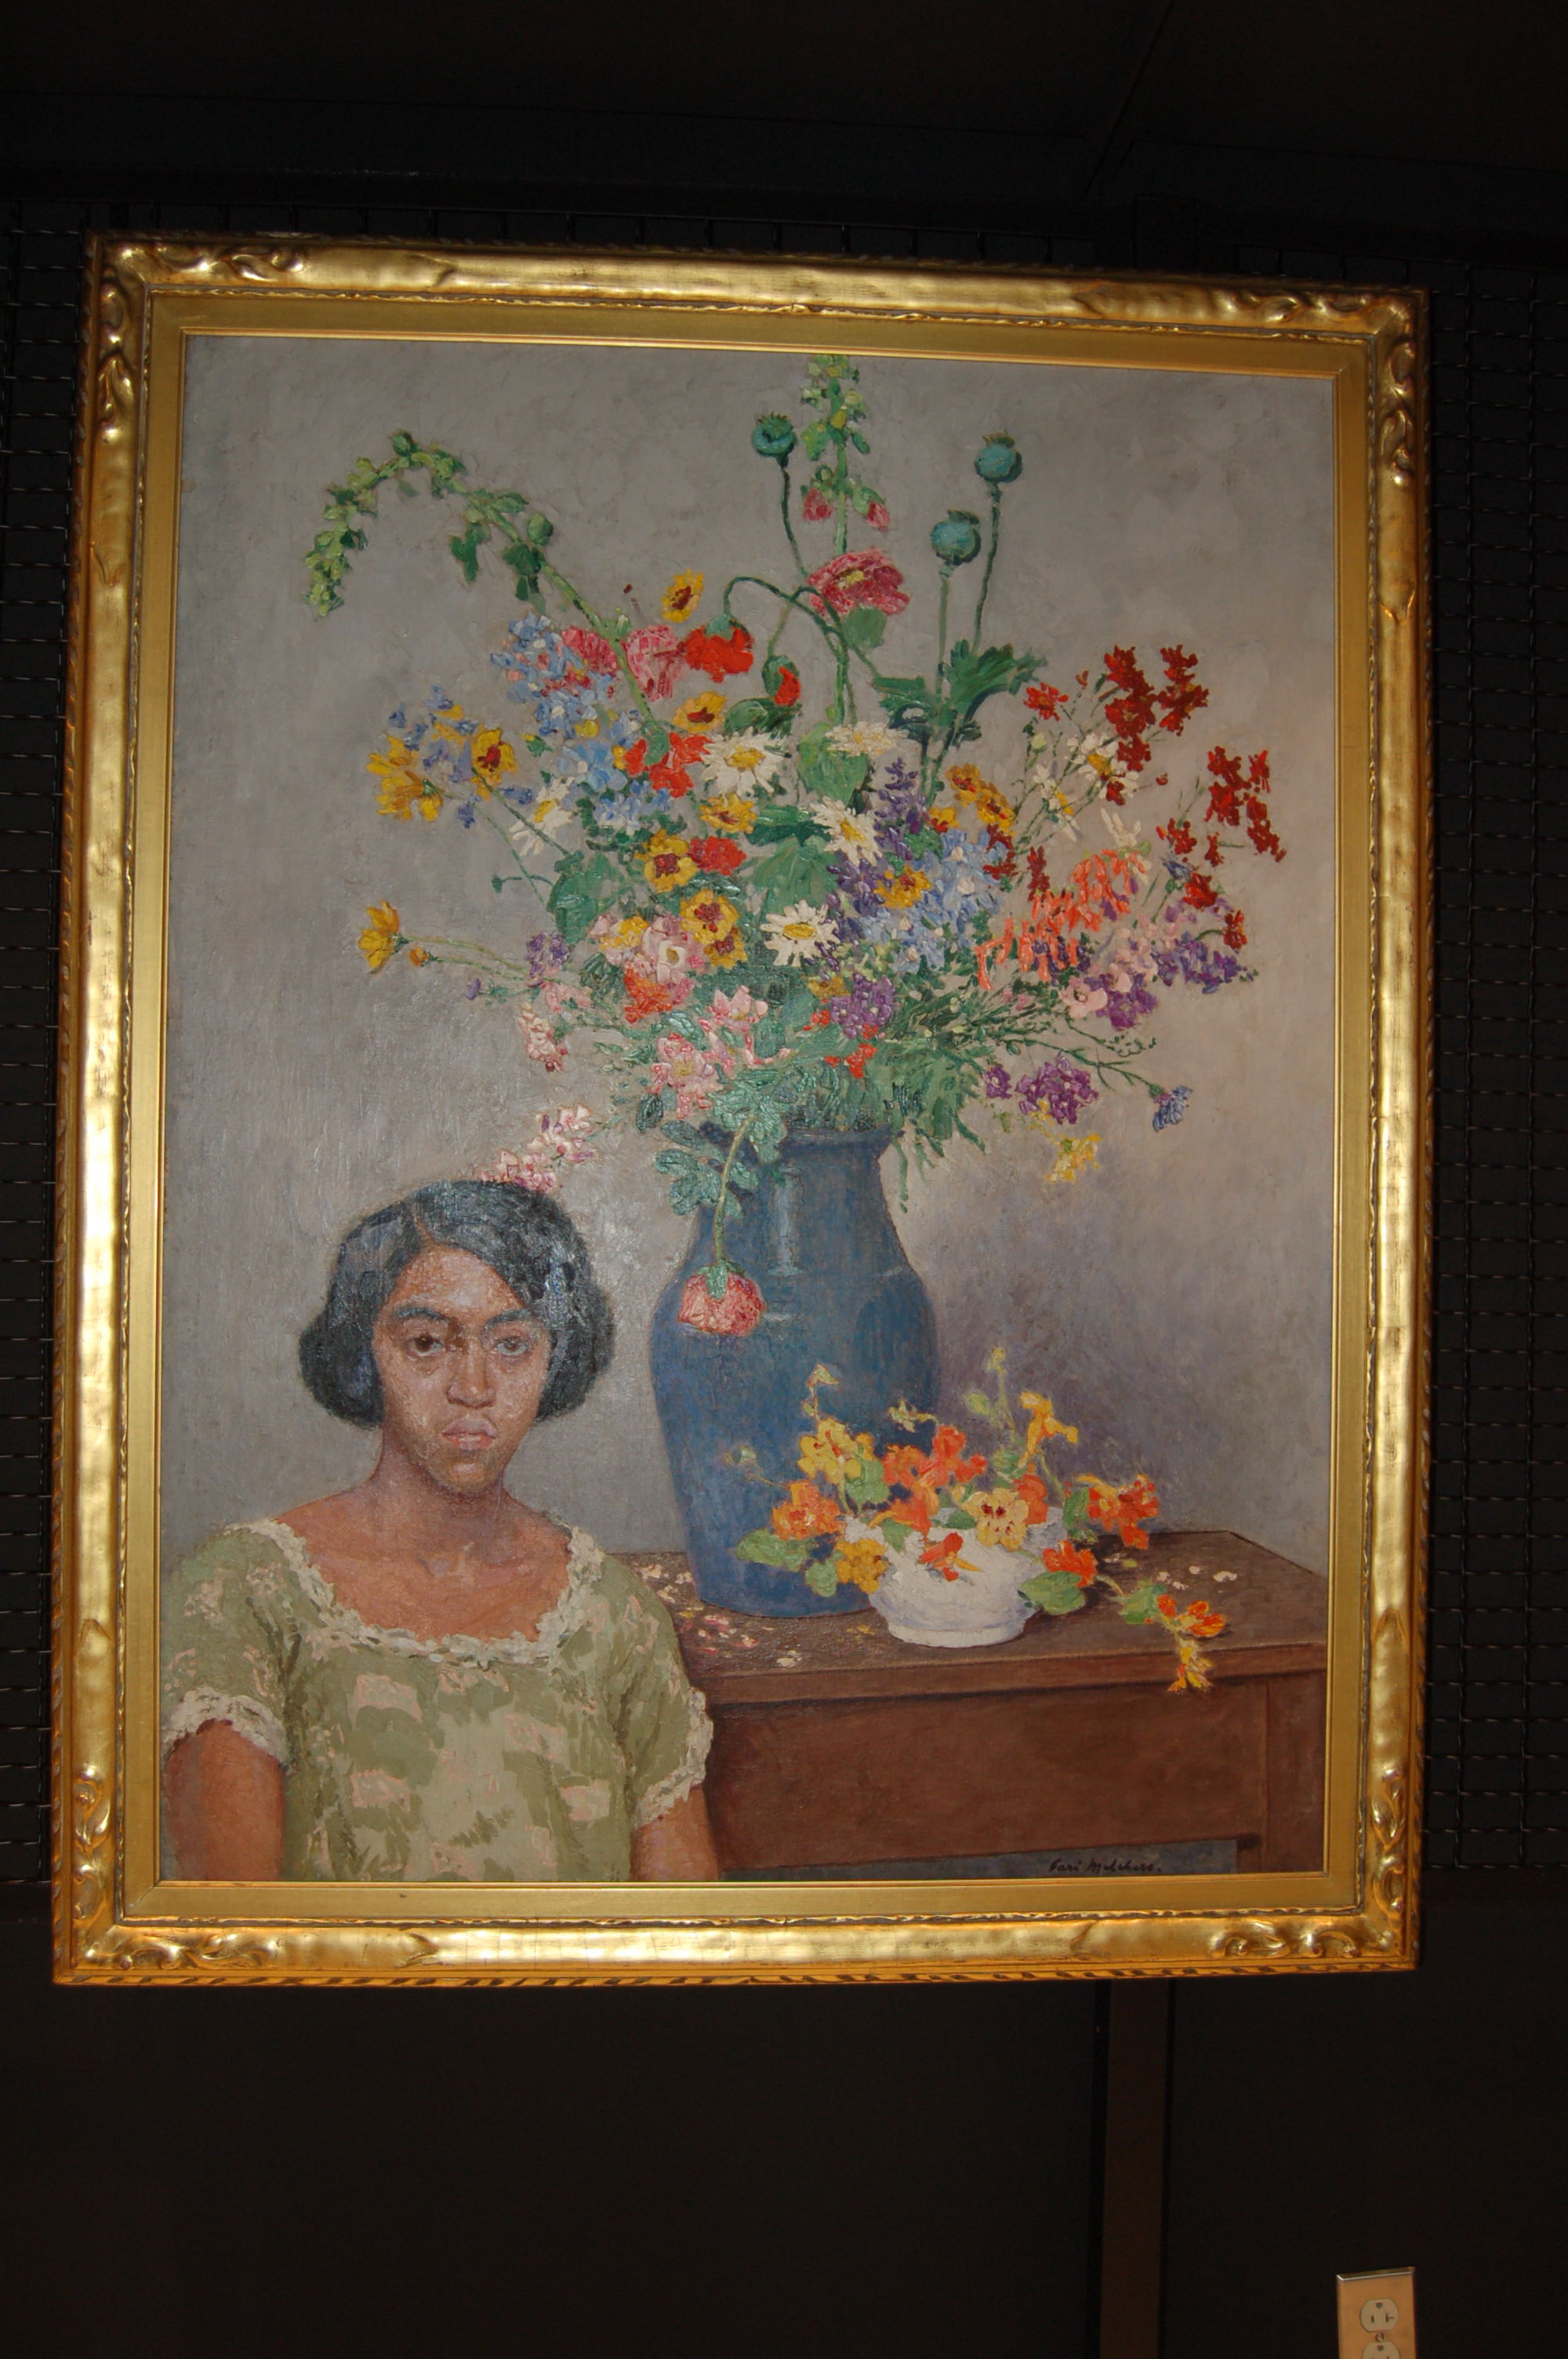 Fanny Roots posing in Gari Melchers' painting, 'Color'